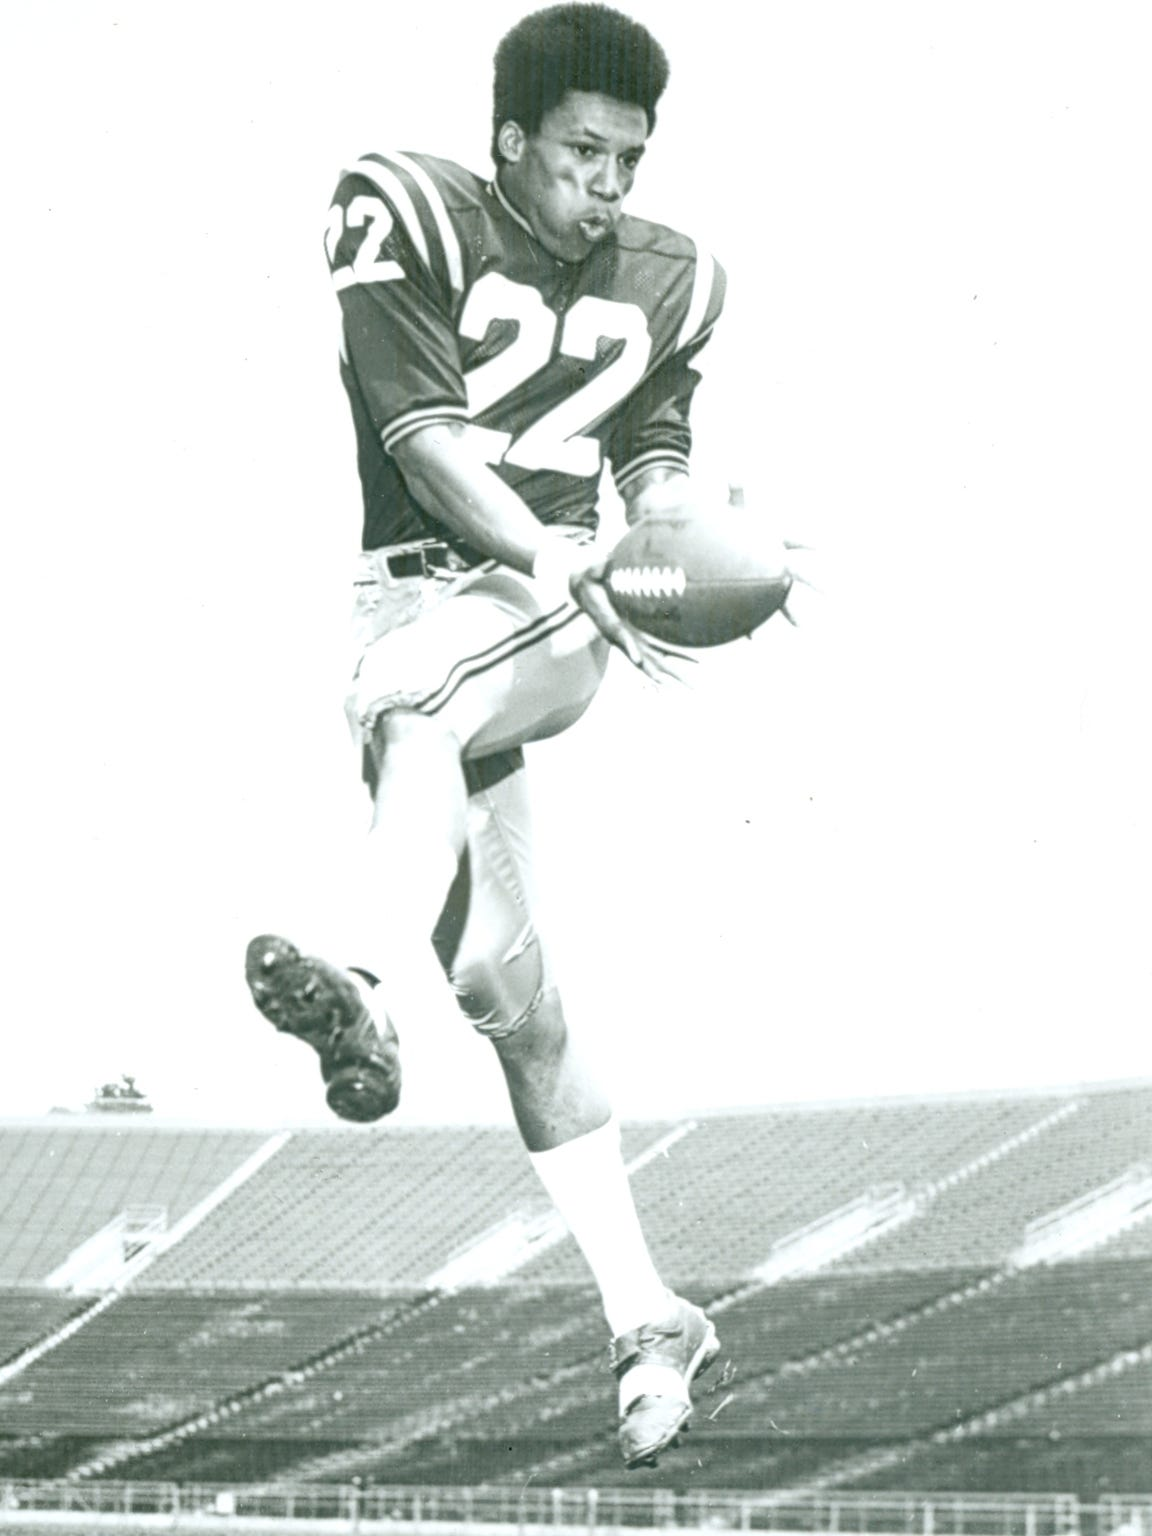 Olympian Larry Burton was also an All-American wide